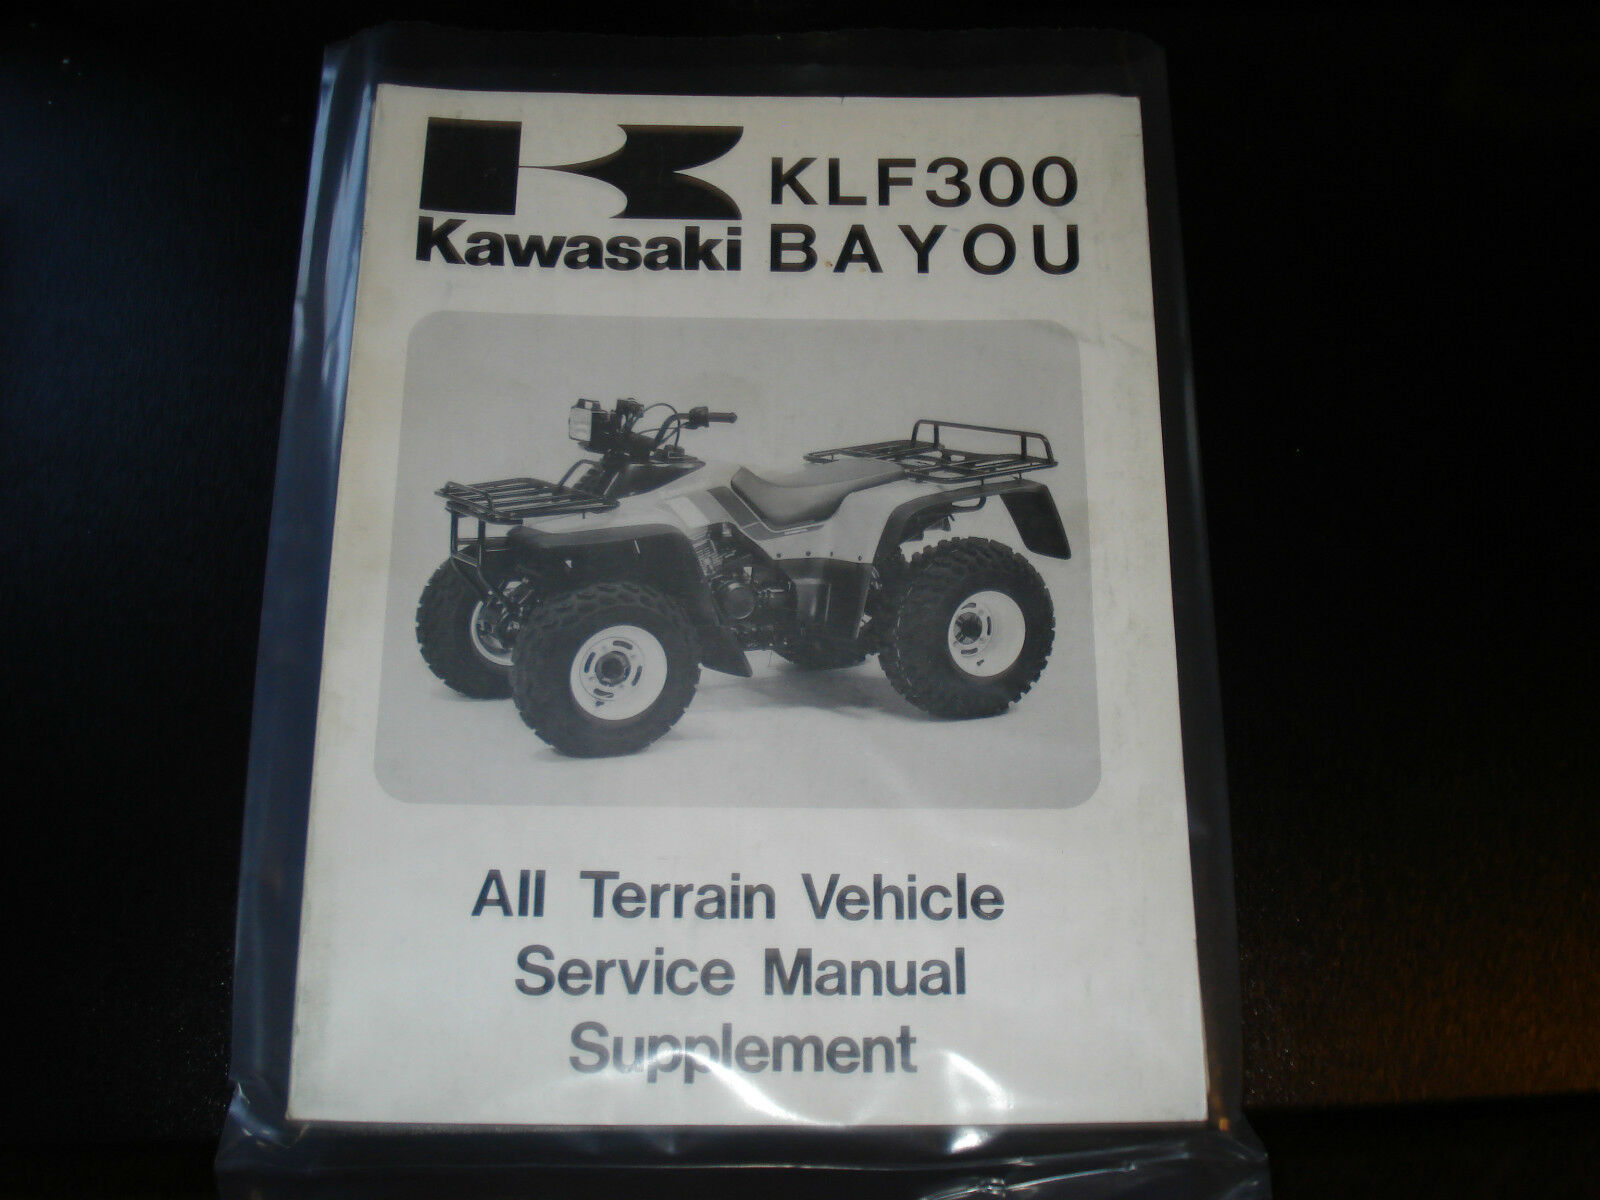 Kawasaki KLF300 BAYOU All Terrain Vehicle Service Manual Supplement 1 of  1Only 3 available ...